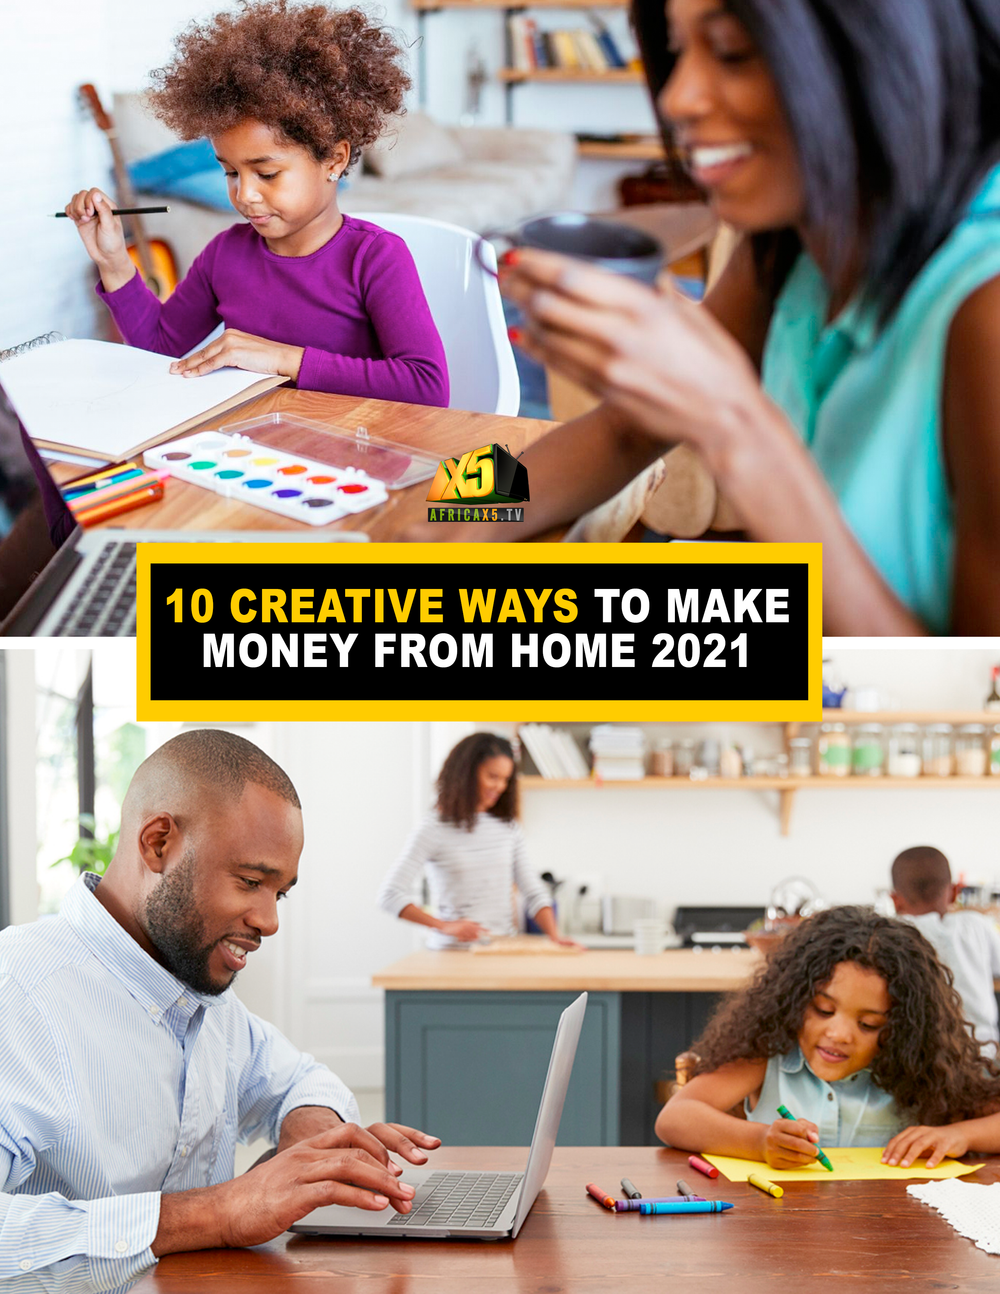 10 Creative Ways to Make Money from Home 2021 (Ebook)